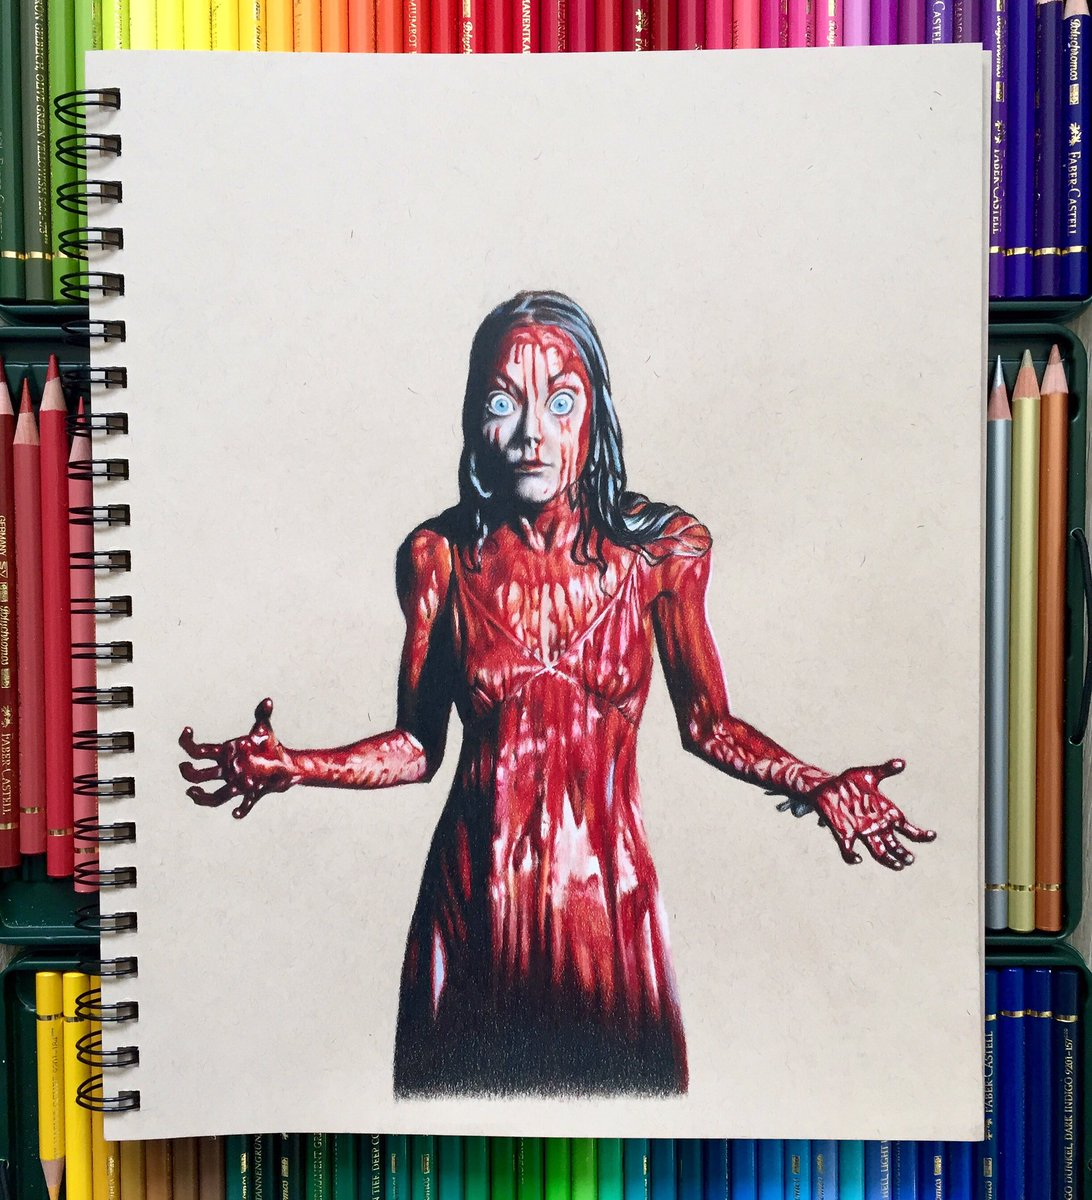 Check out my latest pencil drawing  http://www. renatepostma.com/image/15613935 3475 &nbsp; …  #art #drawings #carrie #stephenking #70s #horrormovie #horrorfan #artist<br>http://pic.twitter.com/YU9ommEQNi